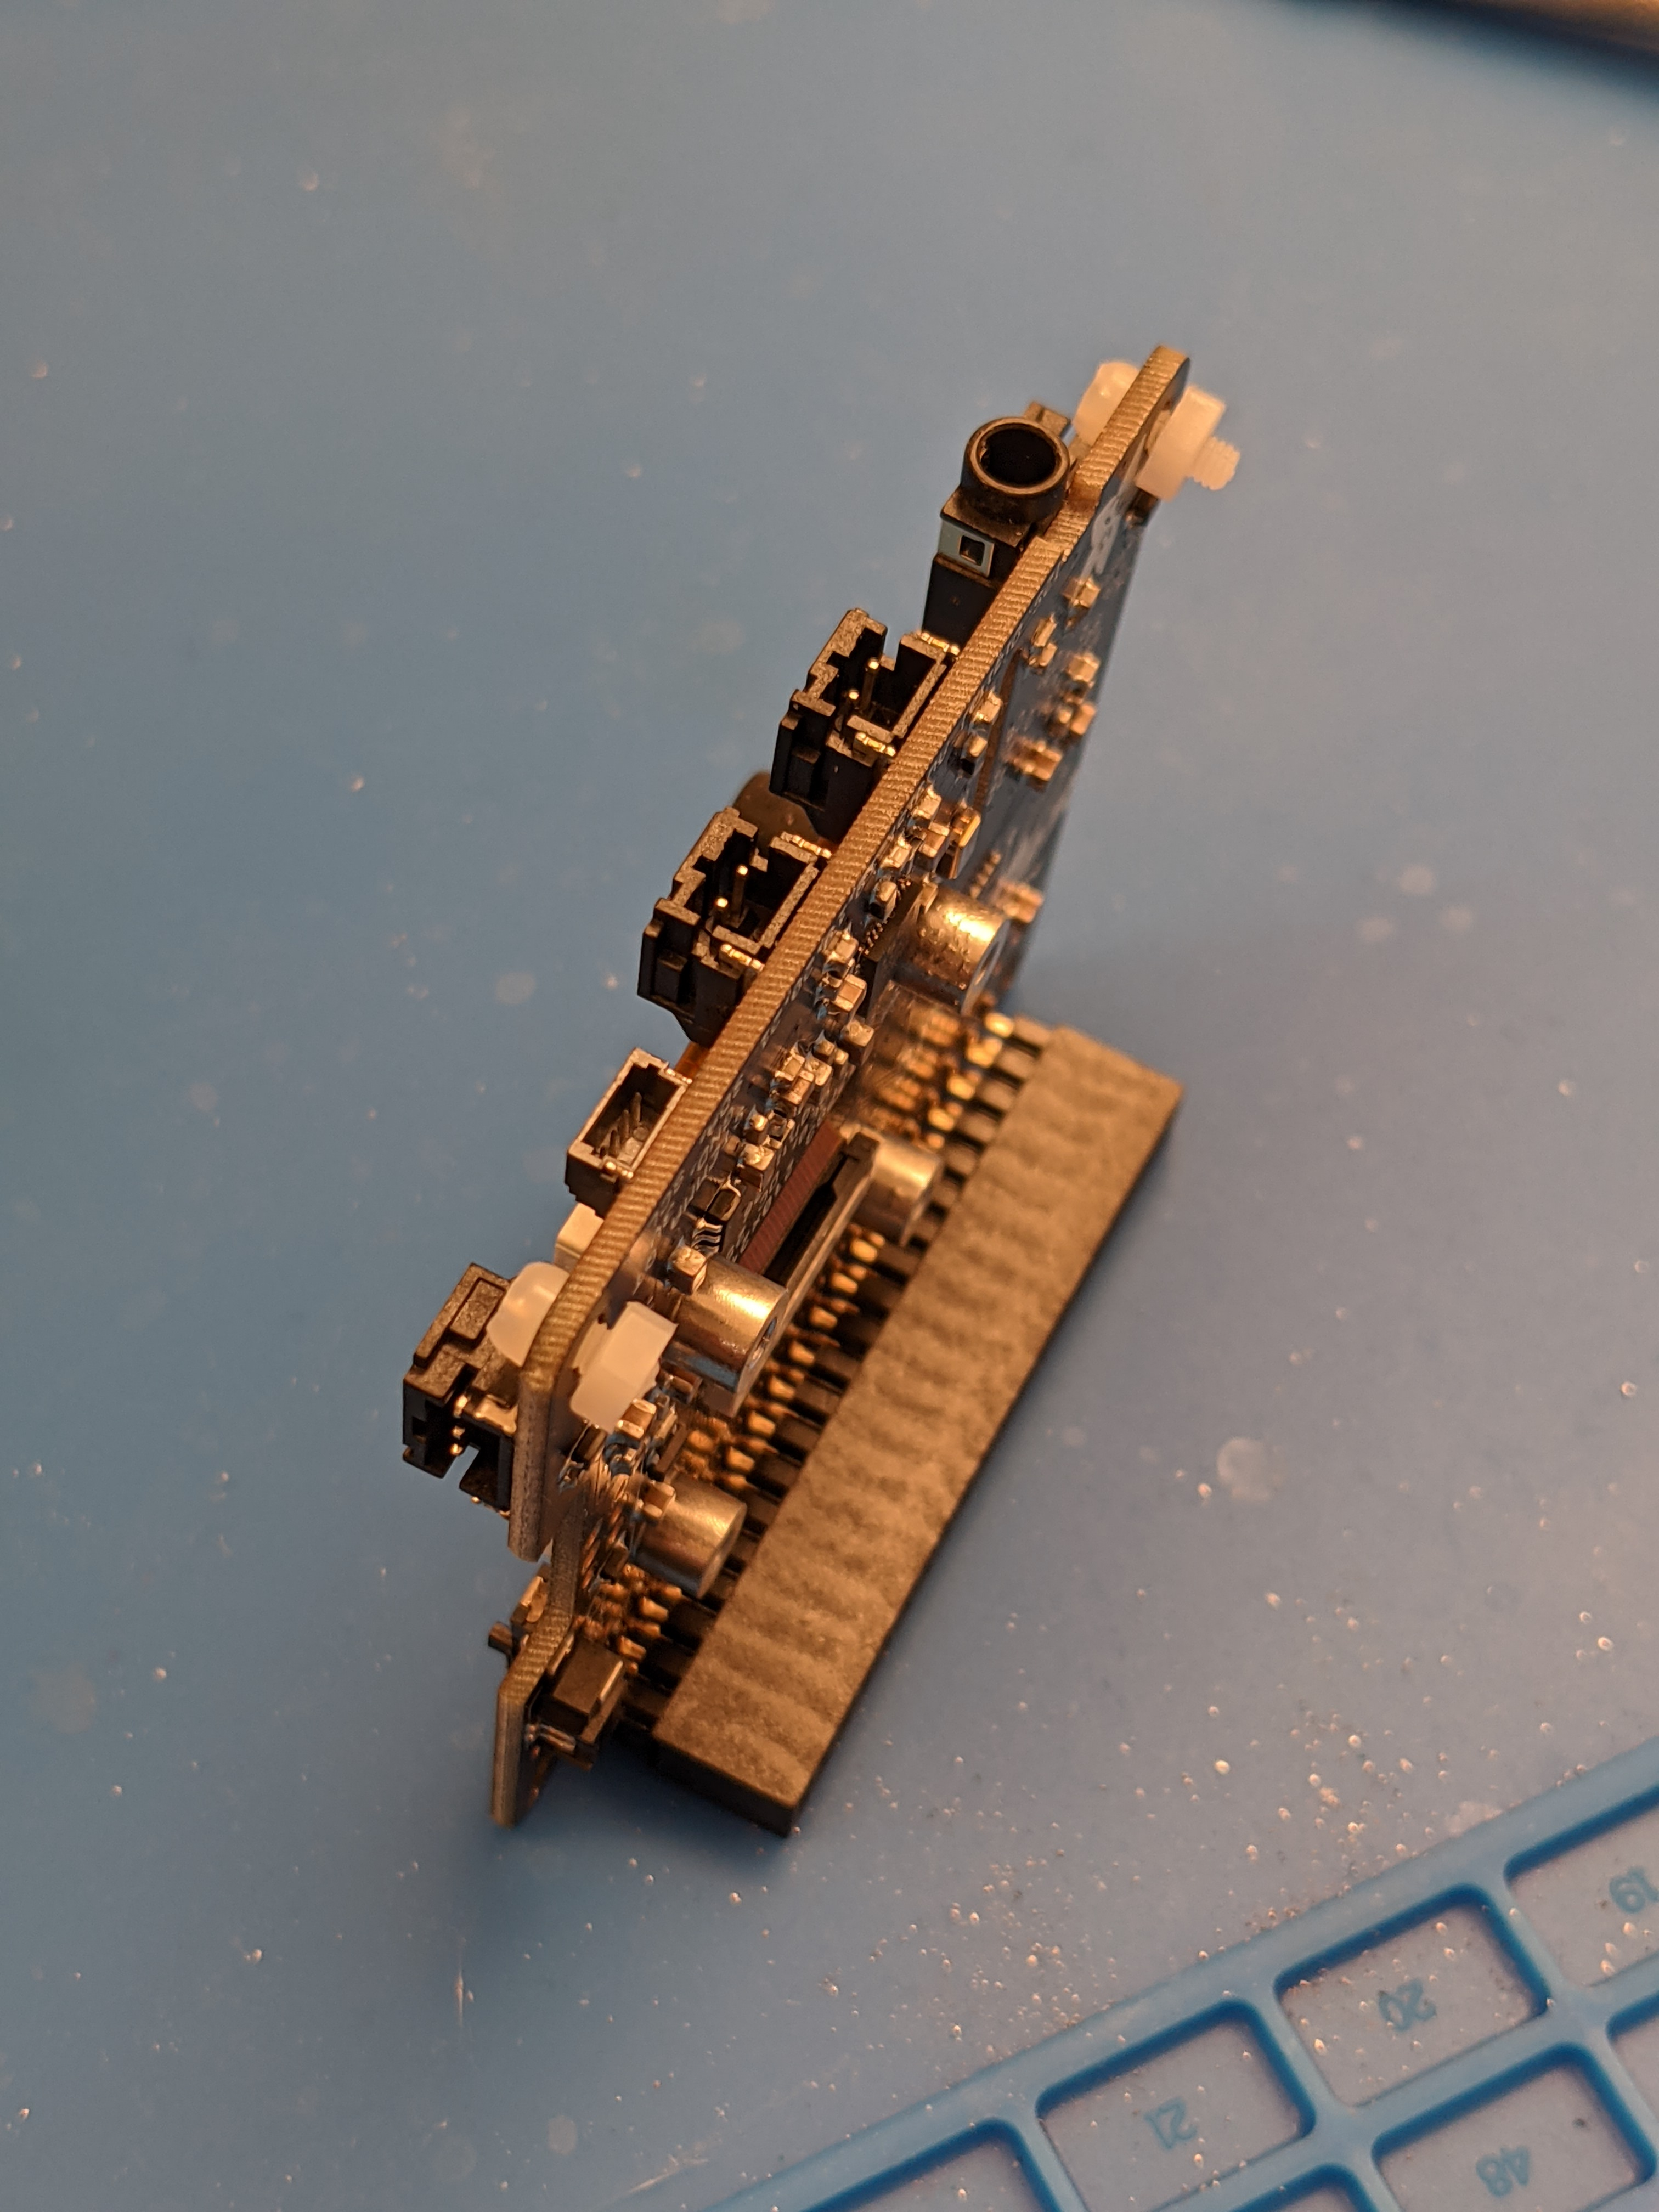 projects_PXL_20201217_151541775.jpg